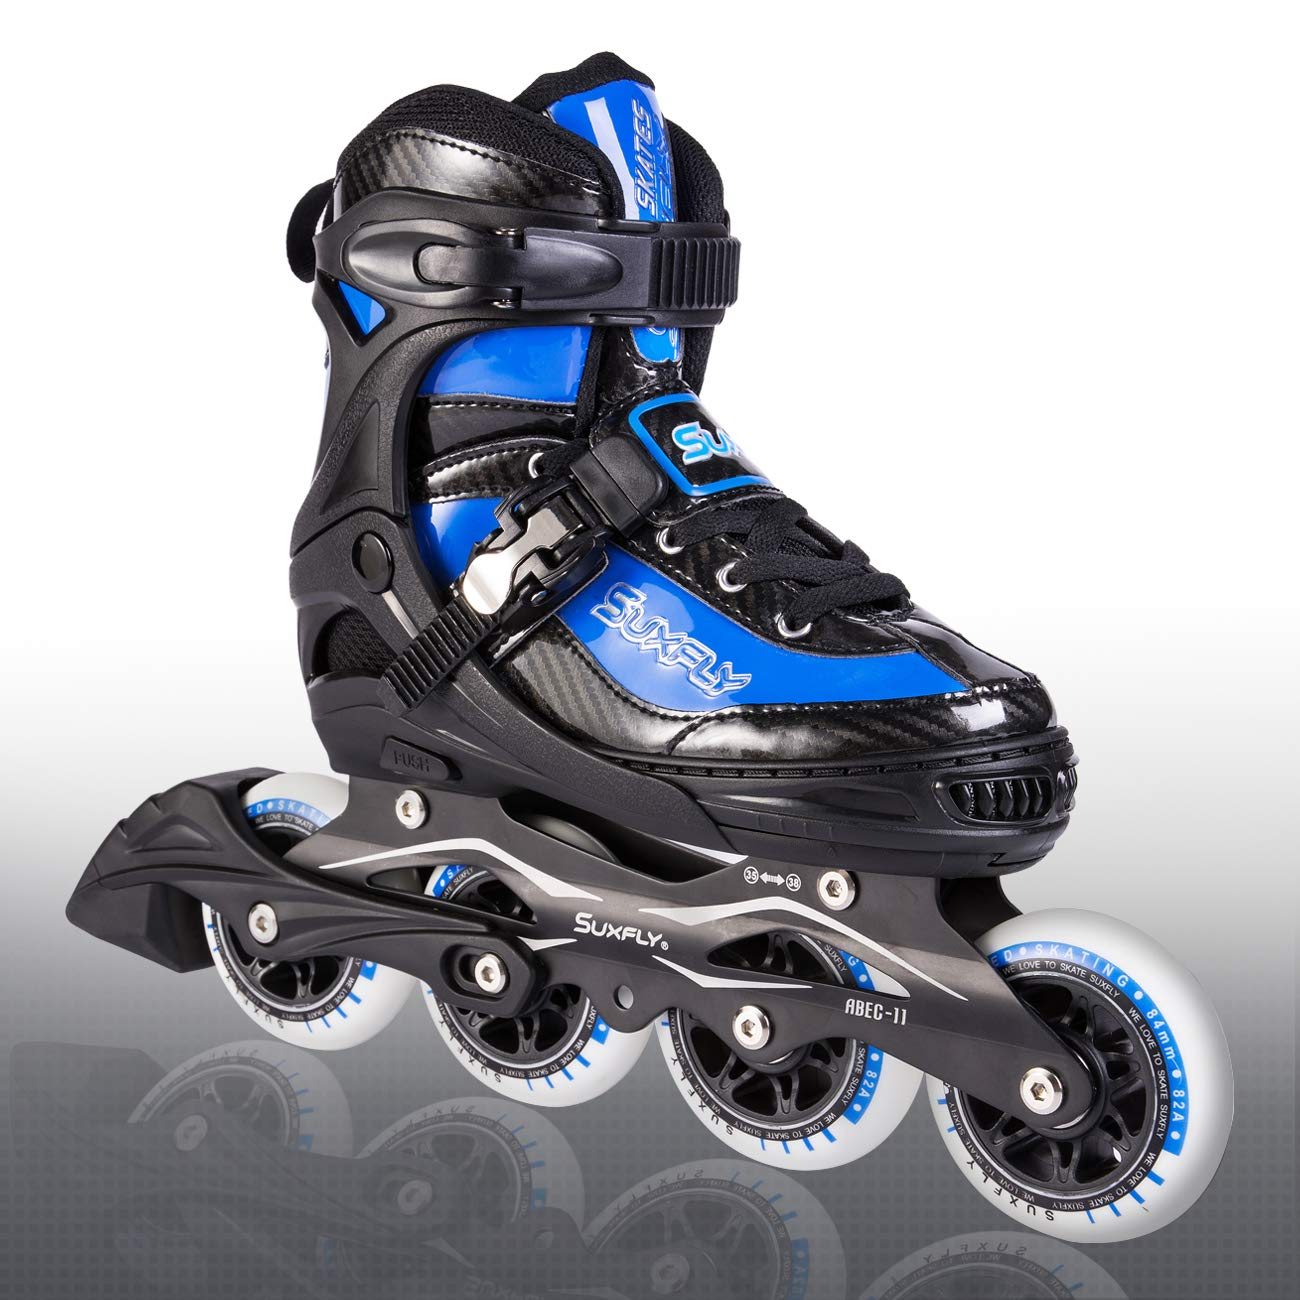 Kuxuan Herio Men Adjustable Rollerblades Fun 11 Aggressive Inline Skates Performance 84mm 90mm Wheels For Boys Girls And Ladies Blue M Sports